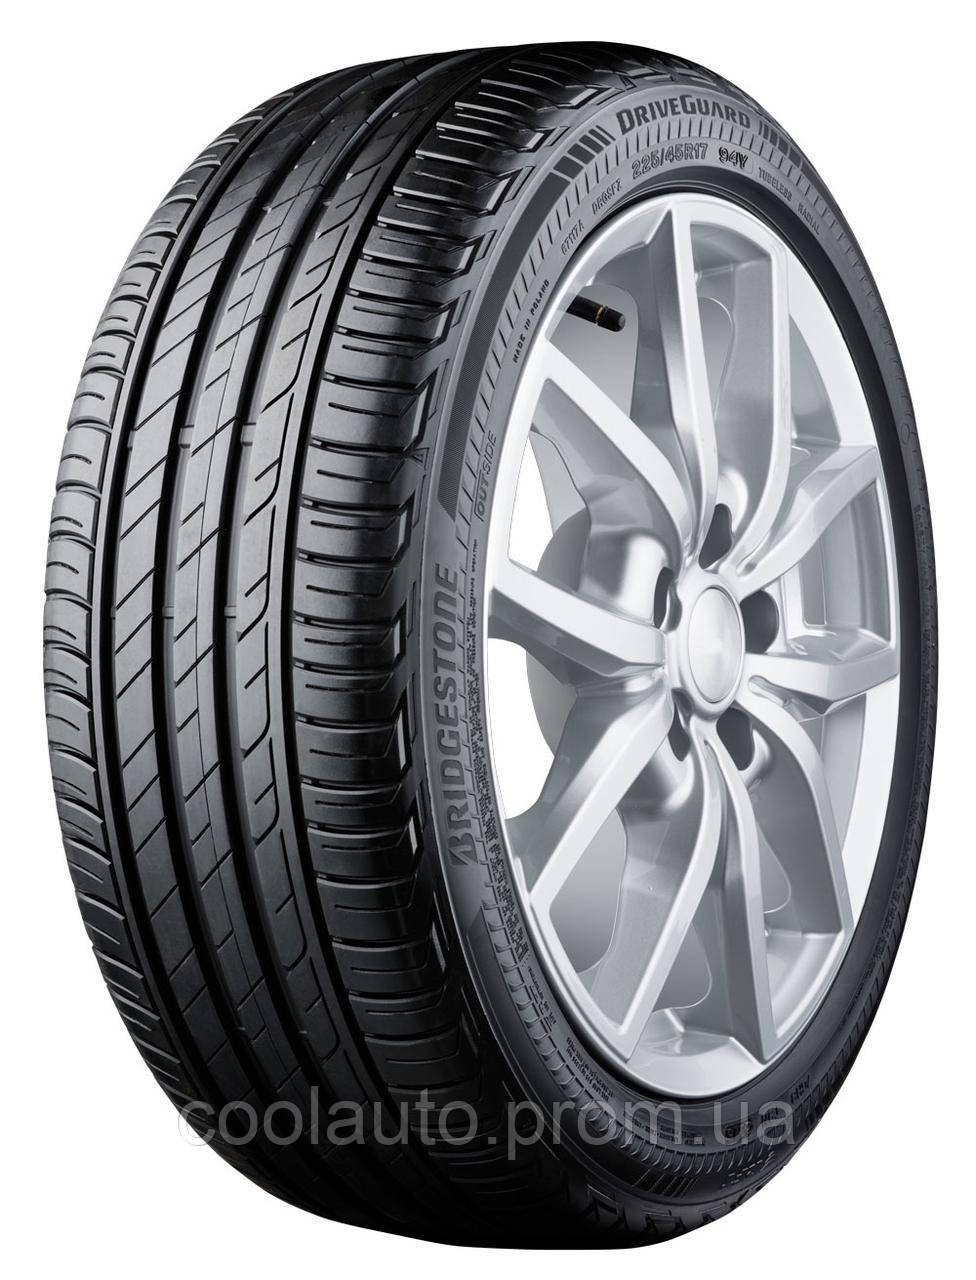 Шины Bridgestone DriveGuard 185/60 R15 88V XL Run Flat